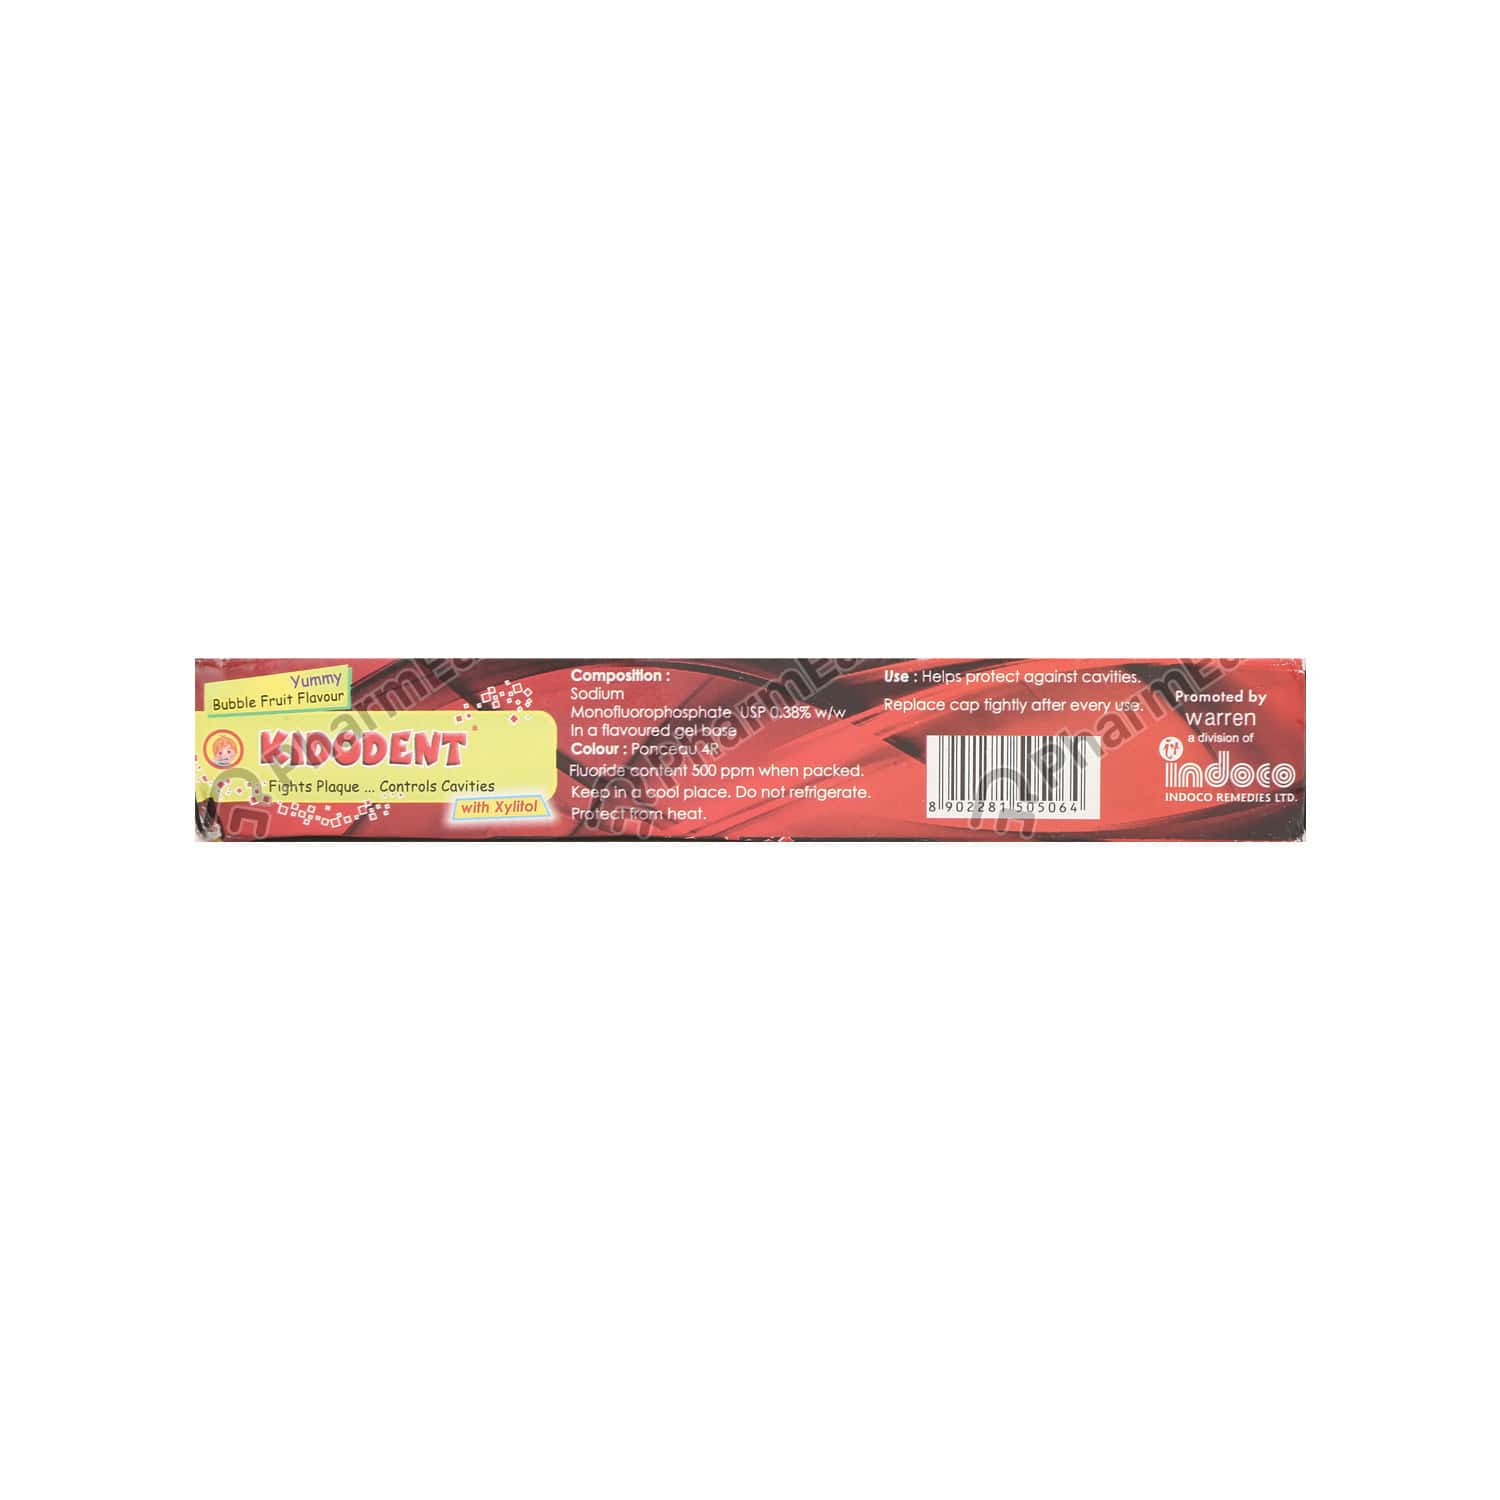 Kidodent 0.38% Bubble Fruit Paste 75gm